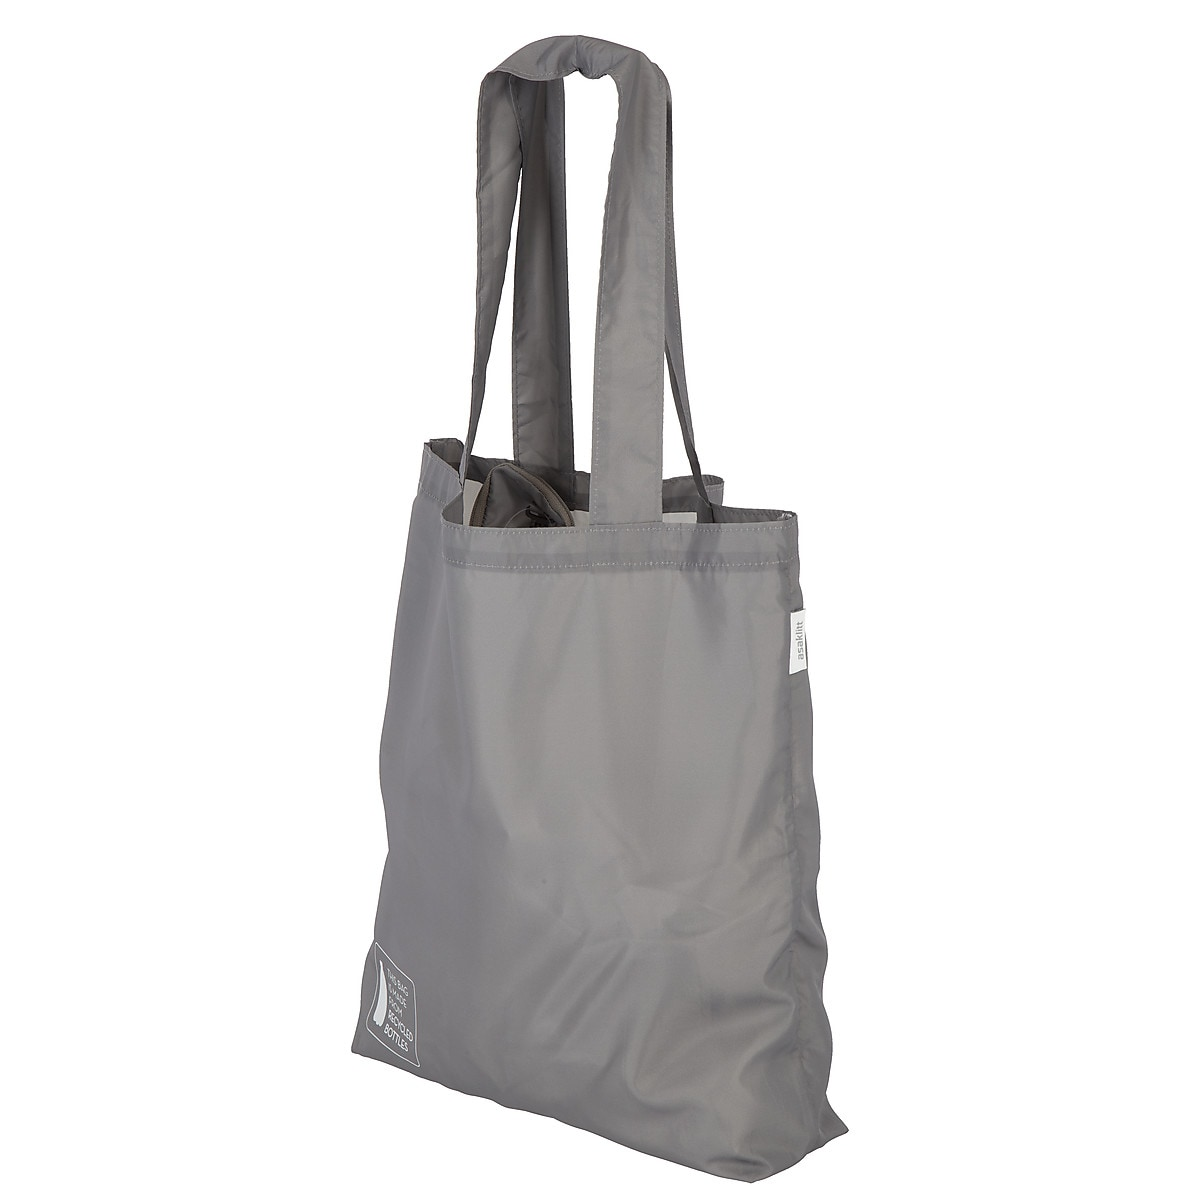 Compact Shopping Bag